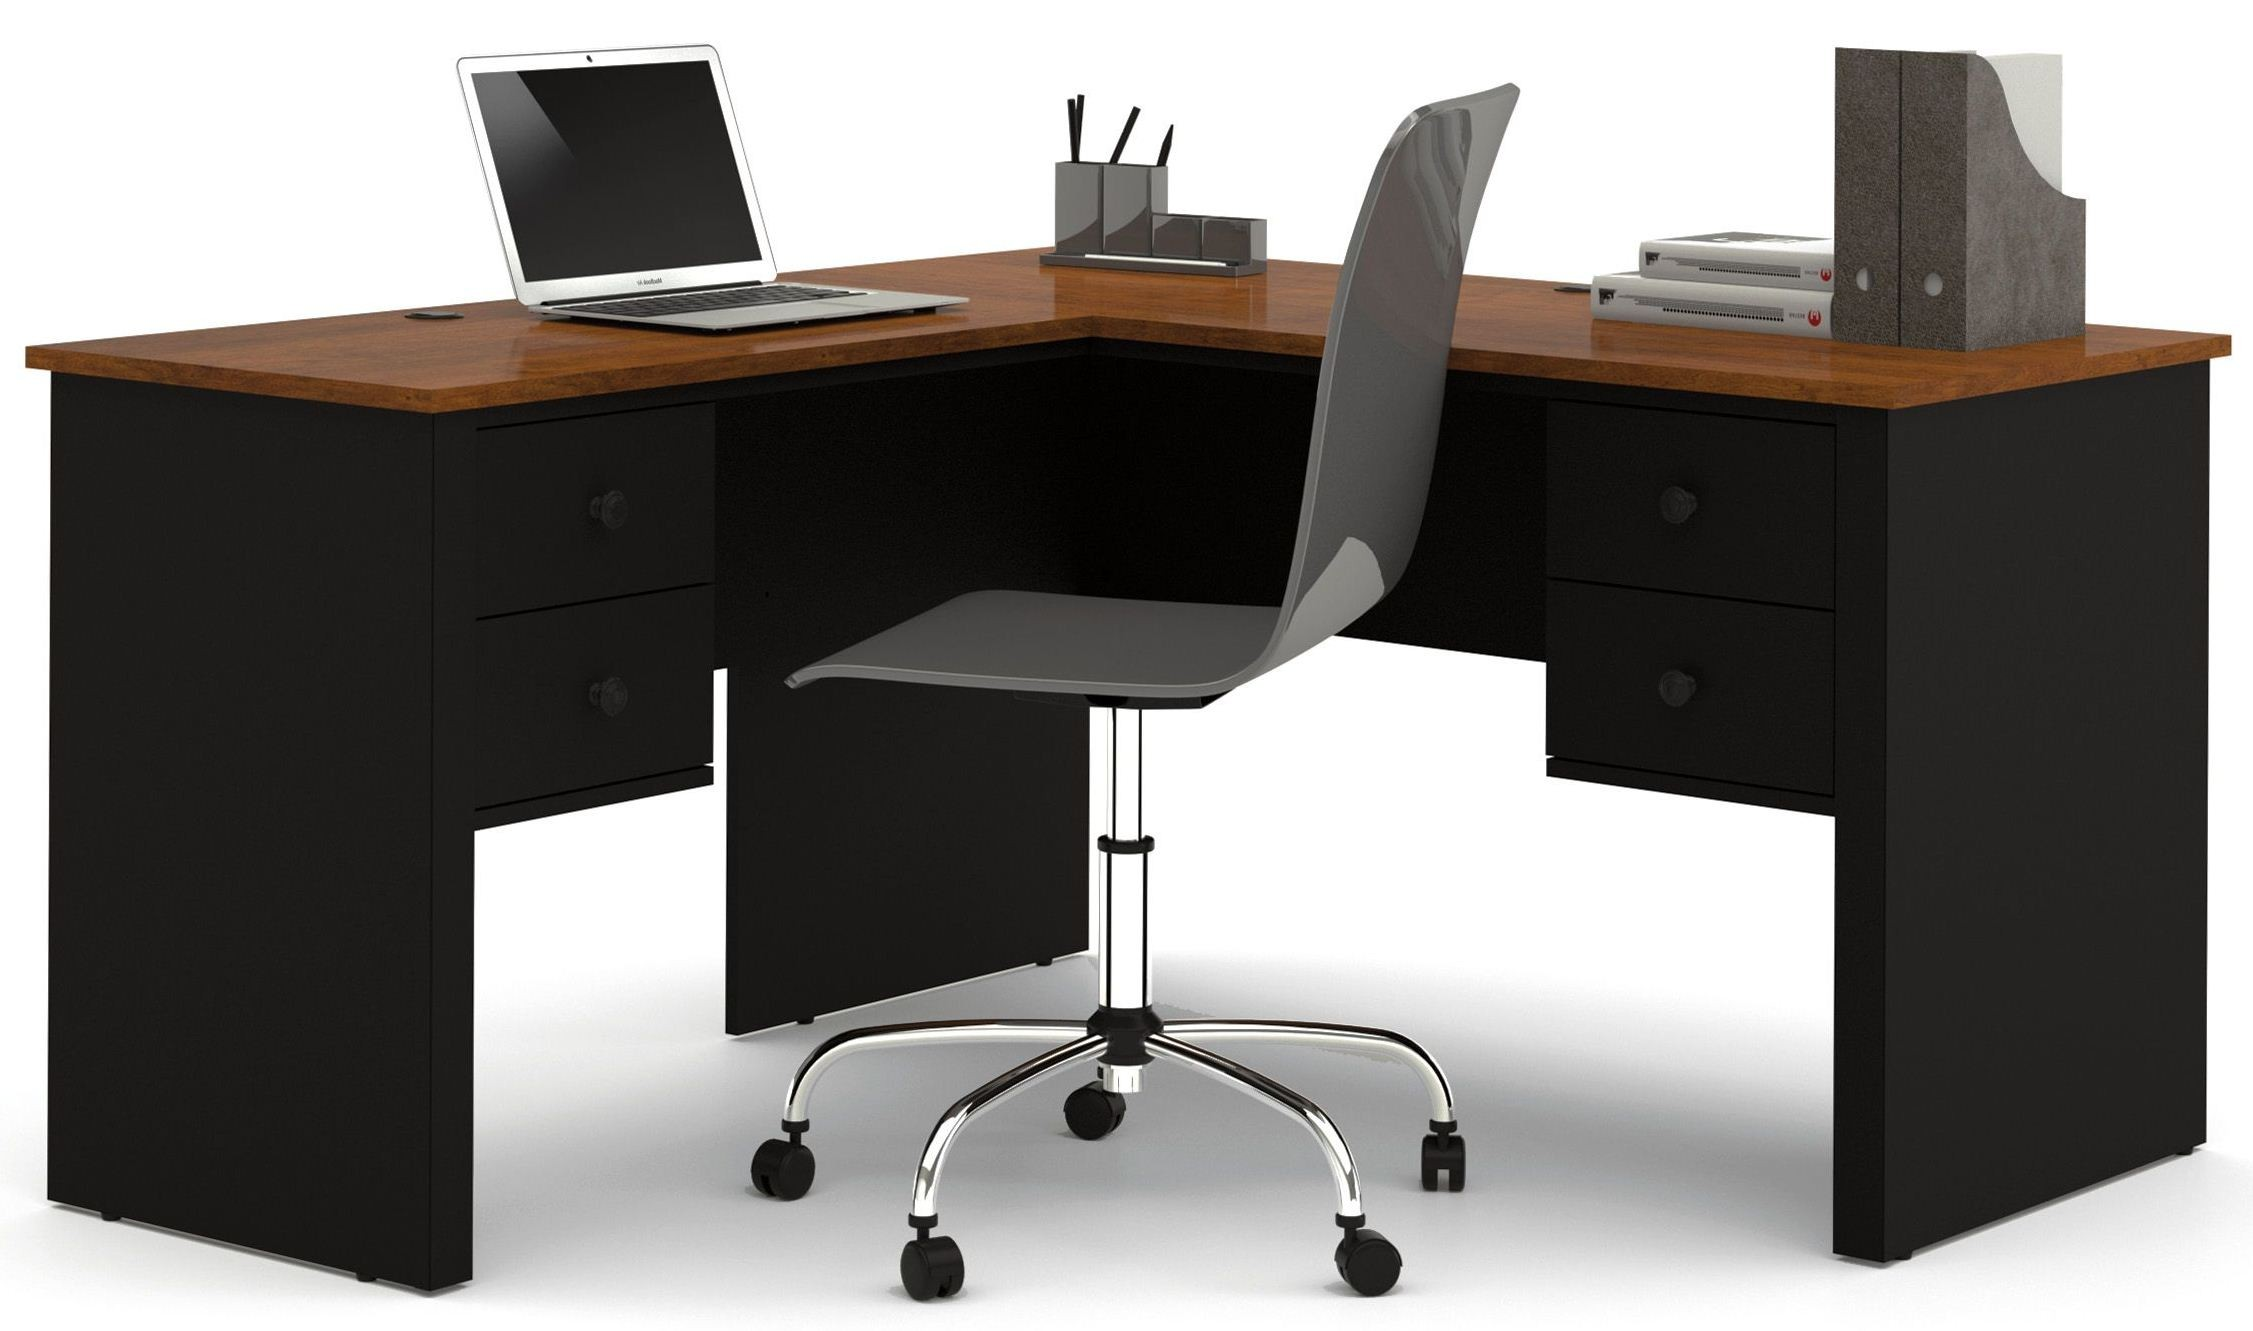 Somerville Black Amp Tuscany Brown L Shaped Desk From Bestar